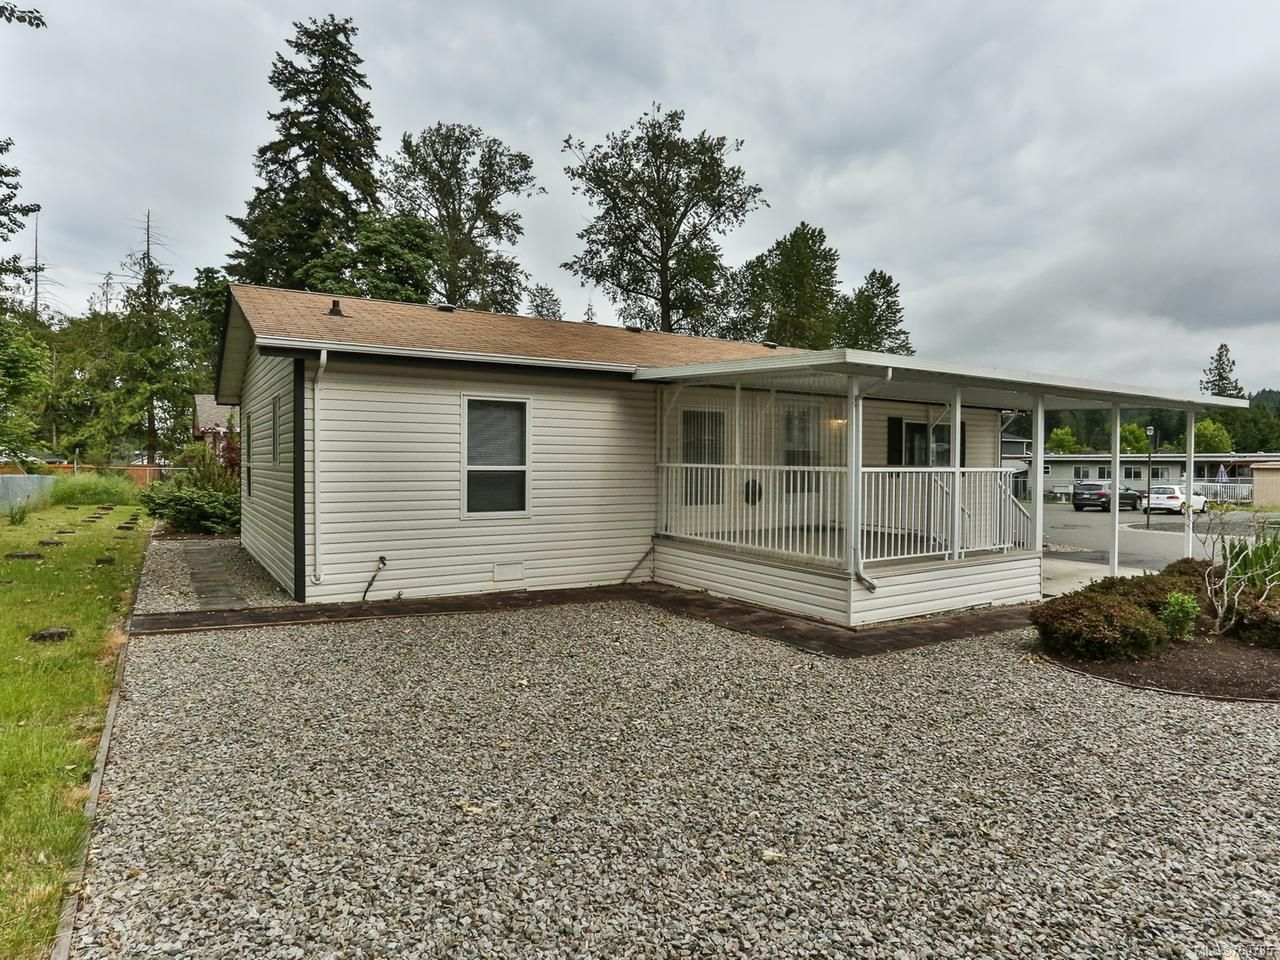 Main Photo: 8 386 Craig St in PARKSVILLE: PQ Parksville Manufactured Home for sale (Parksville/Qualicum)  : MLS®# 760785